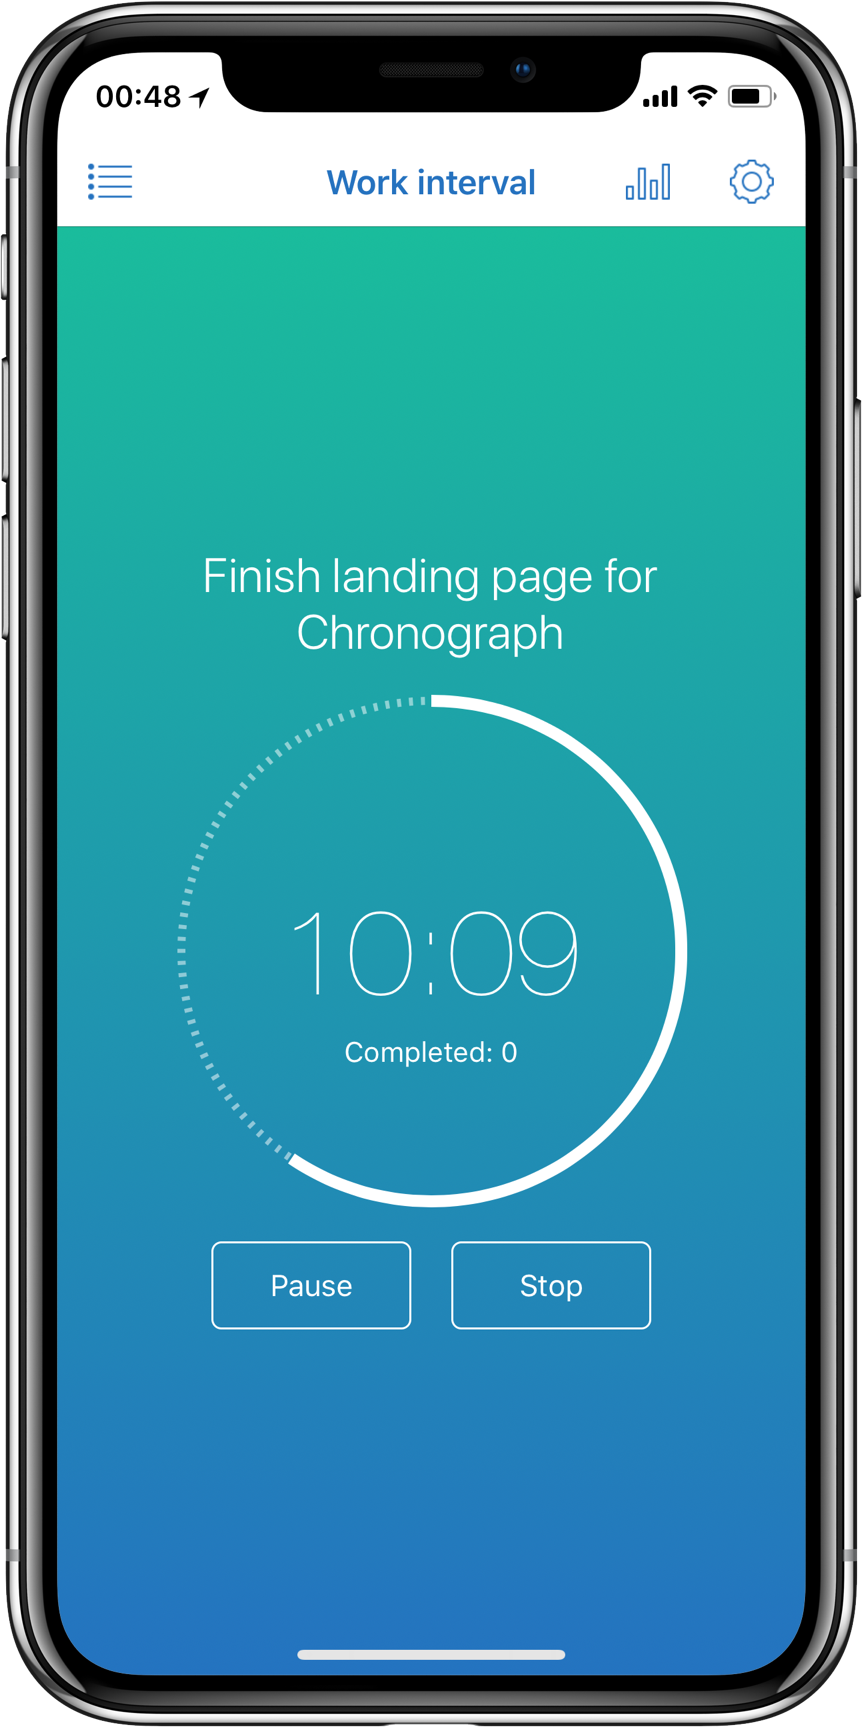 Chronograph app screenshot